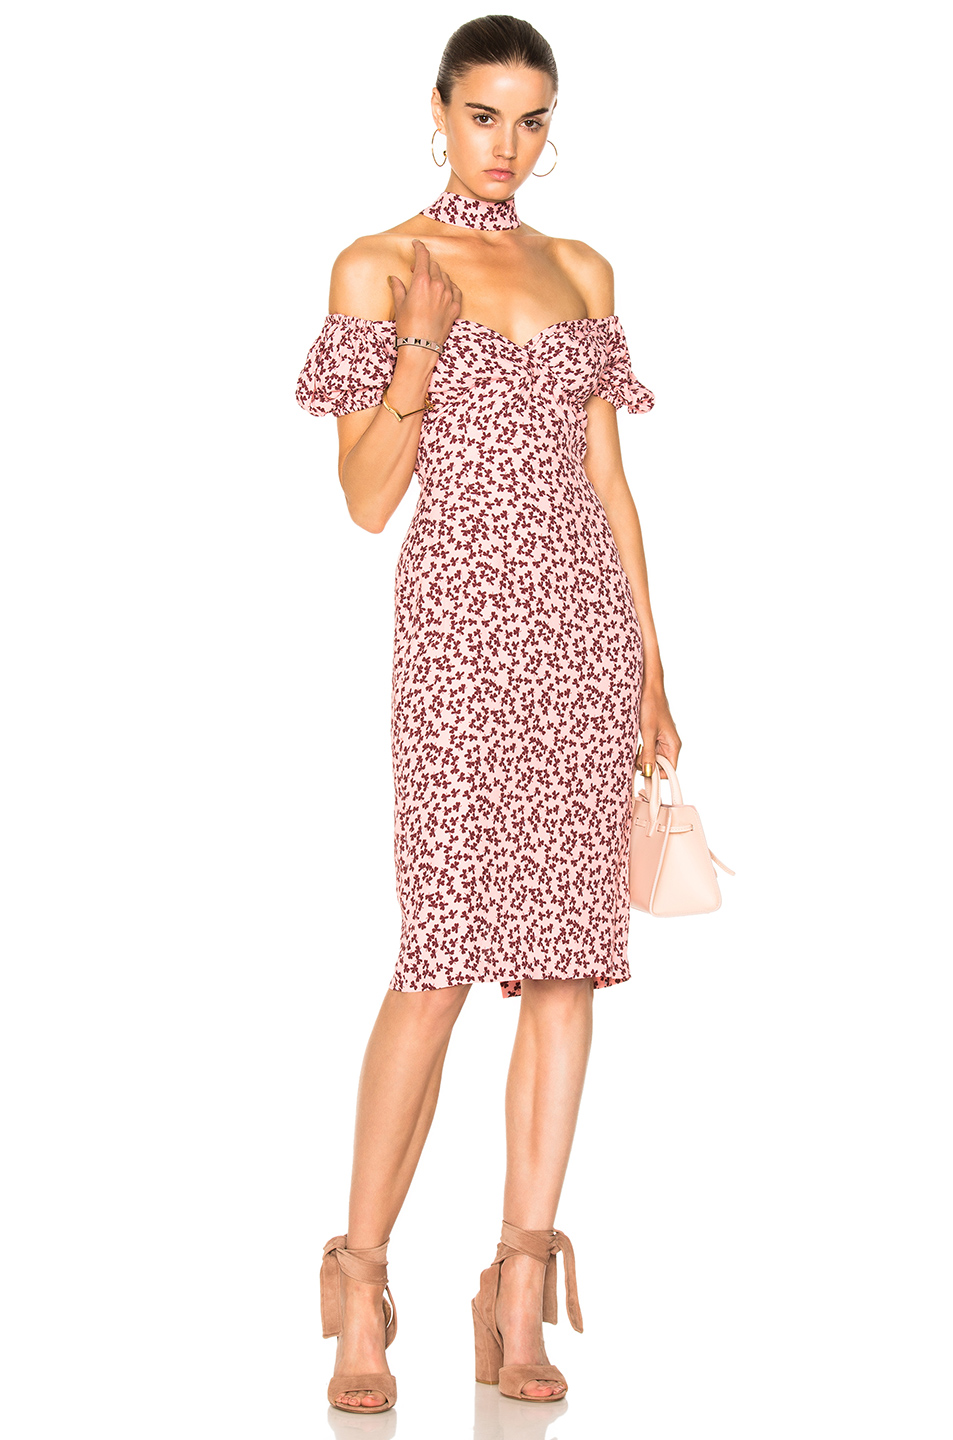 Alexis Calla Dress in Floral,Pink